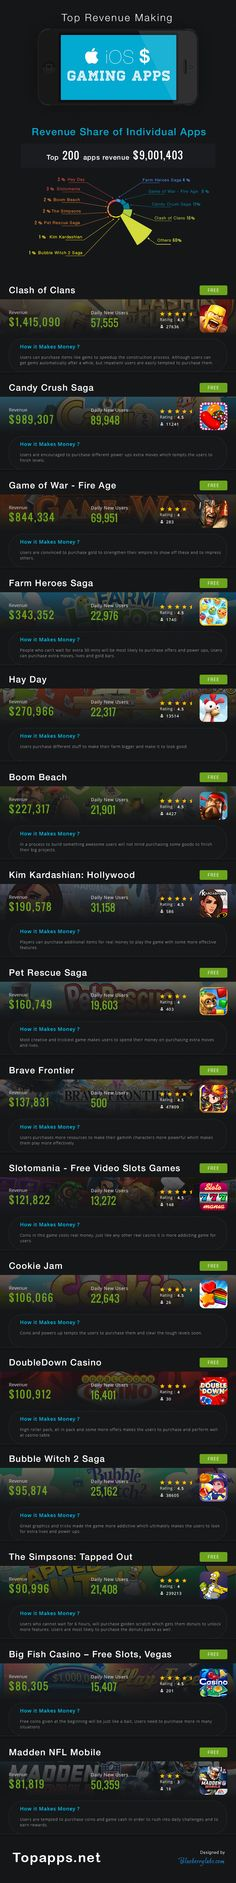 Top Revenue Making #iOS Gaming Apps